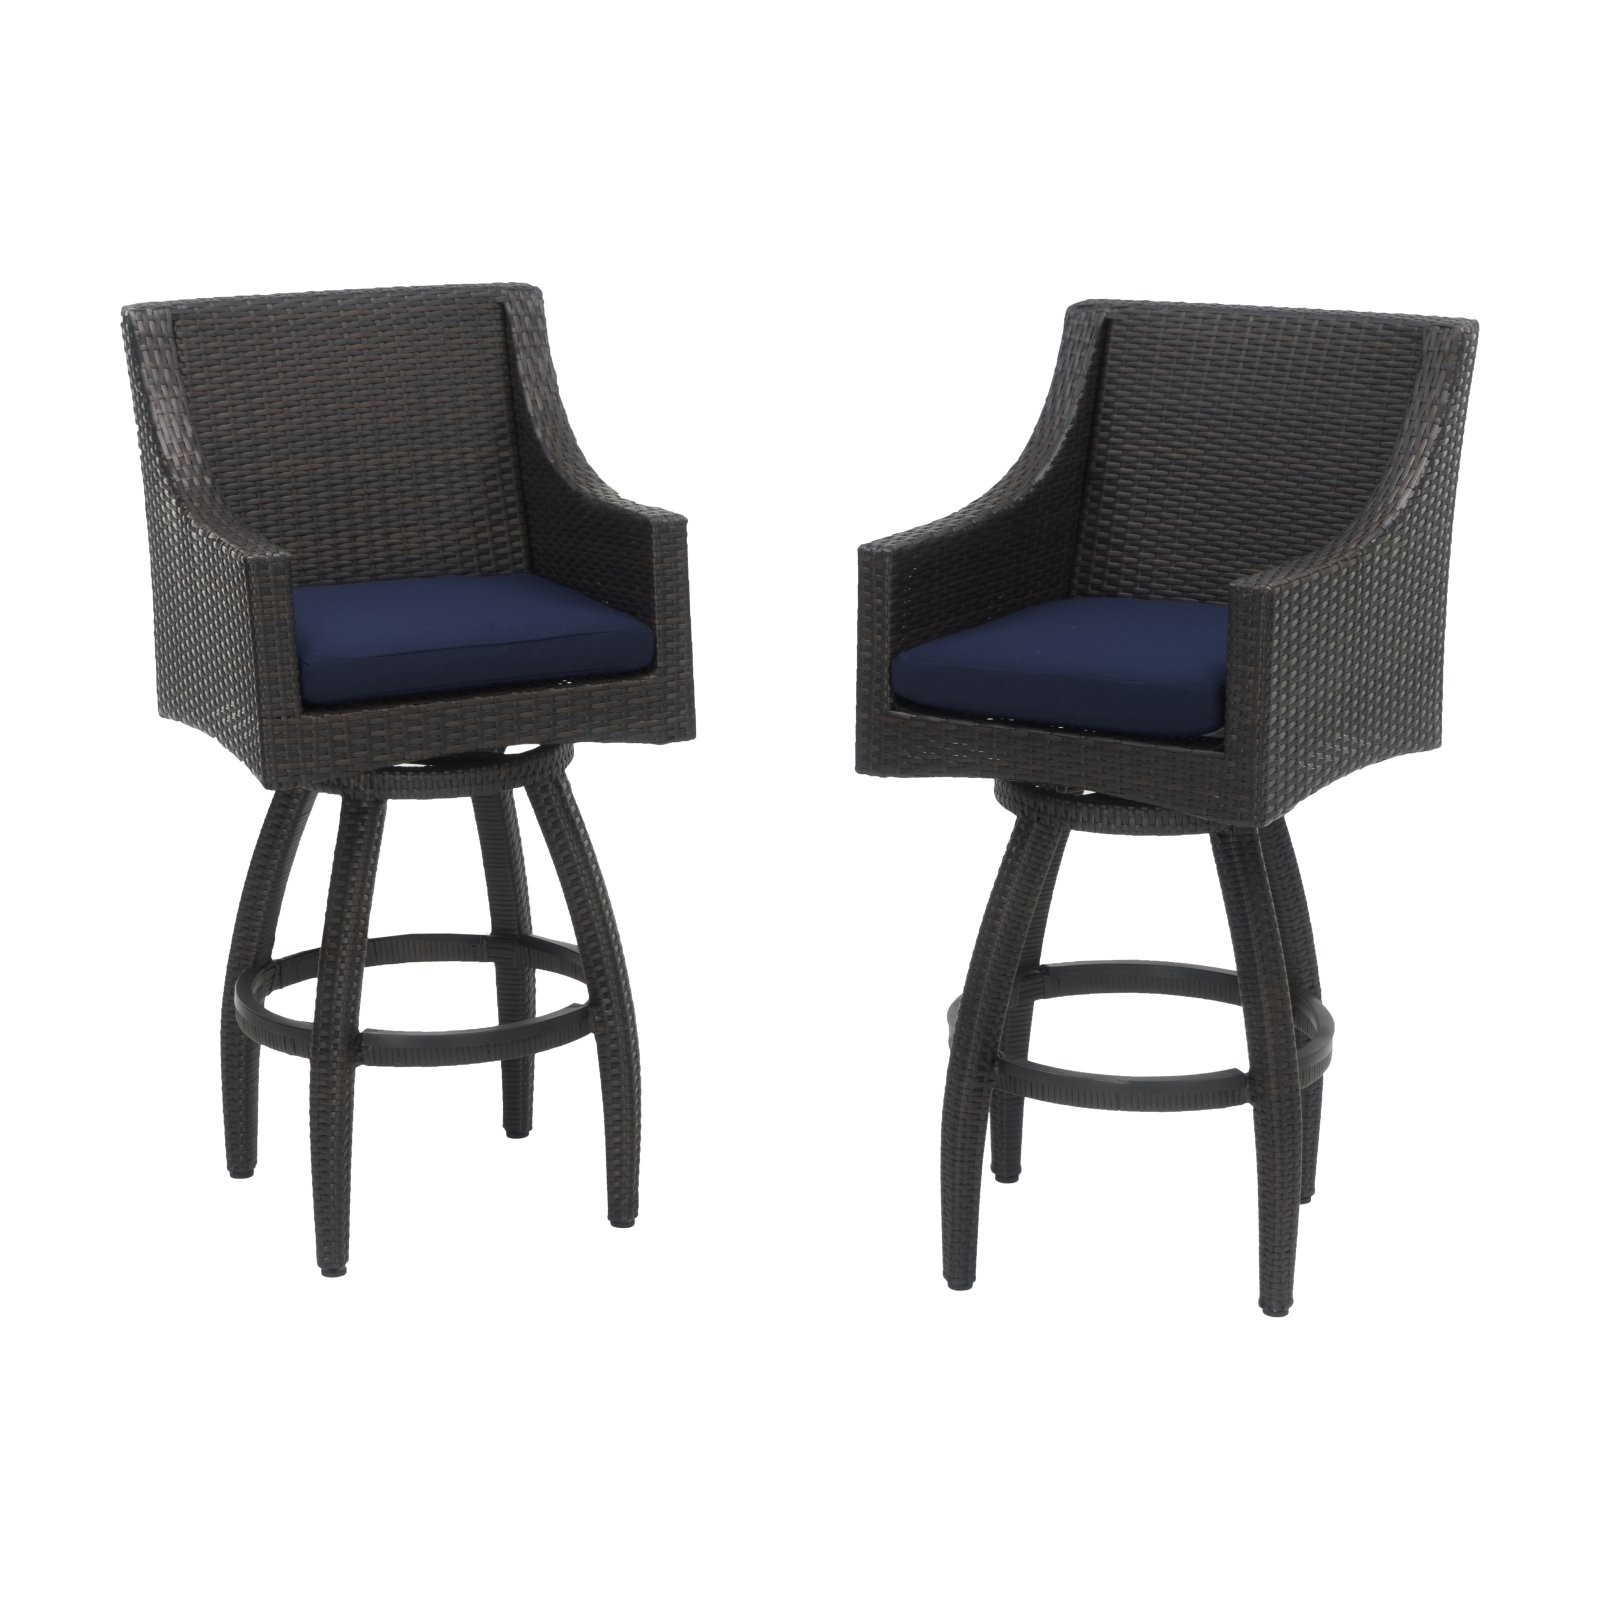 Deco Set of 2 Swivel Barstools in Sunbrella Navy Blue by RST Brands